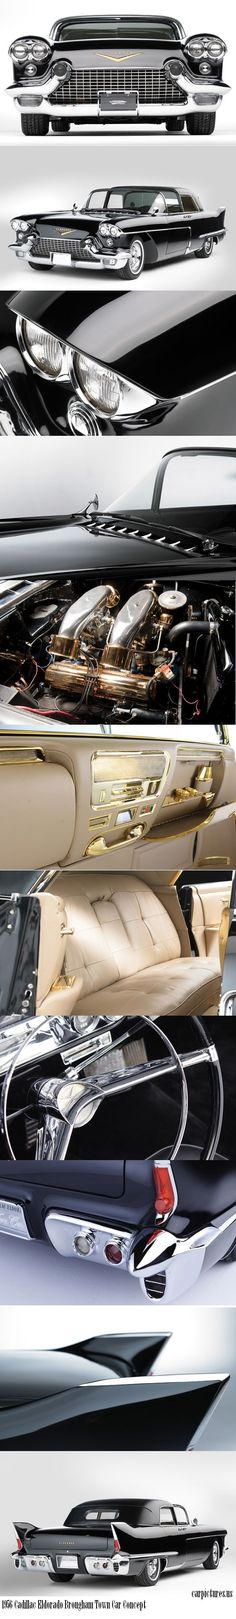 1956 Cadillac Eldorado Brougham Town Car Concept  SealingsAndExpungements.com 888-9-EXPUNGE (888-939-7864) 24/7  Free evaluations/Low money down/Easy payments.  Sealing past mistakes. Opening new opportunities.